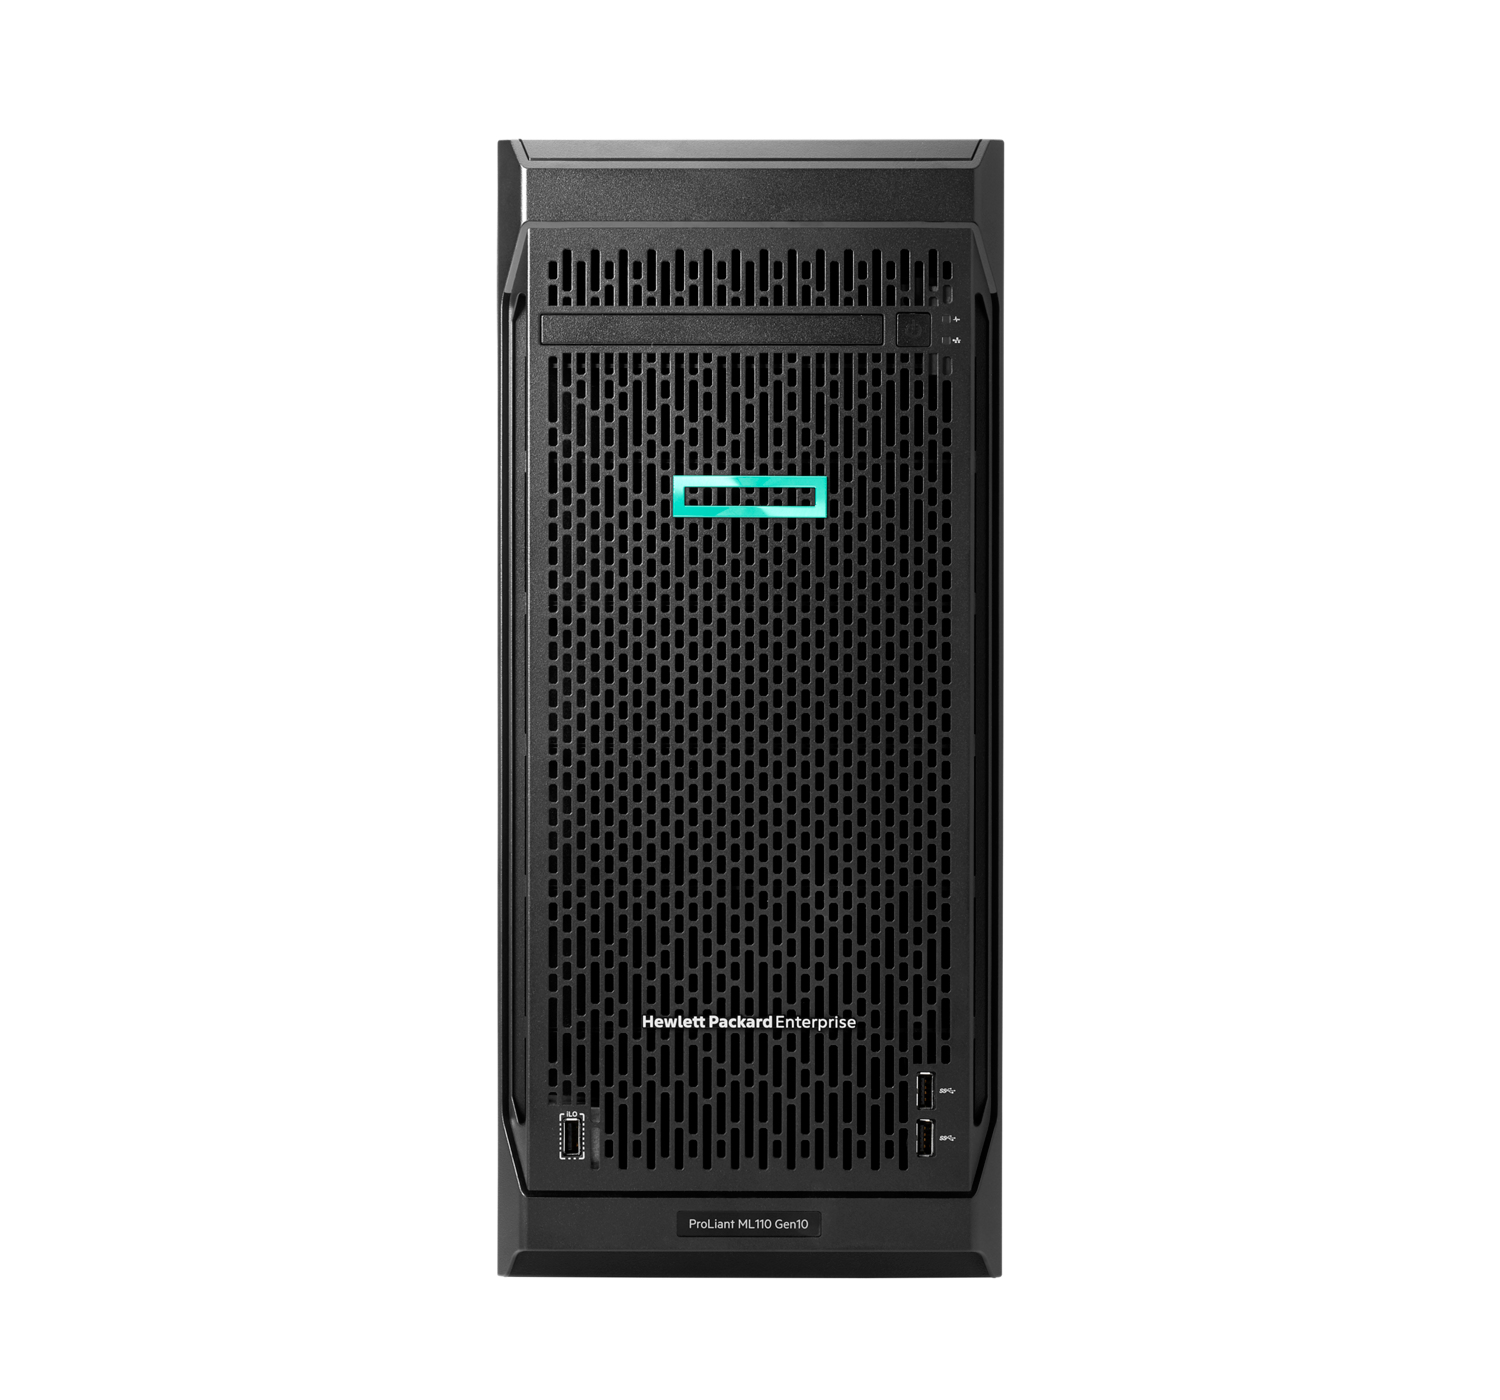 Hewlett Packard Enterprise ProLiant ML110 Gen10 servidor Intel® Xeon® Silver 2,4 GHz 16 GB DDR4-SDRAM 38,4 TB Torre (4,5U) 800 W